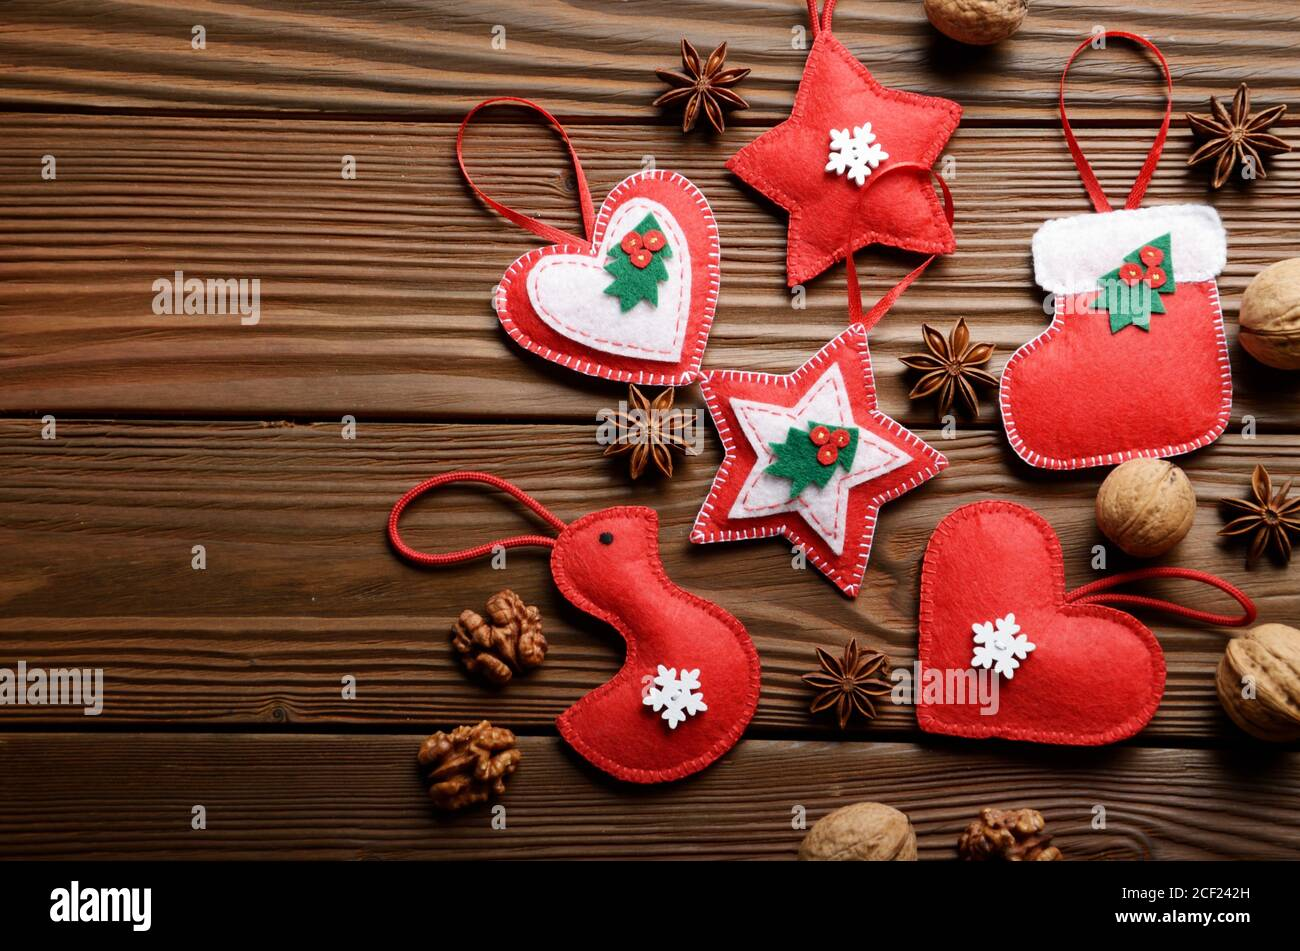 Handmade Rustic Christmas Tree Decorations With Walnuts And Cones On Wooden Table Stock Photo Alamy